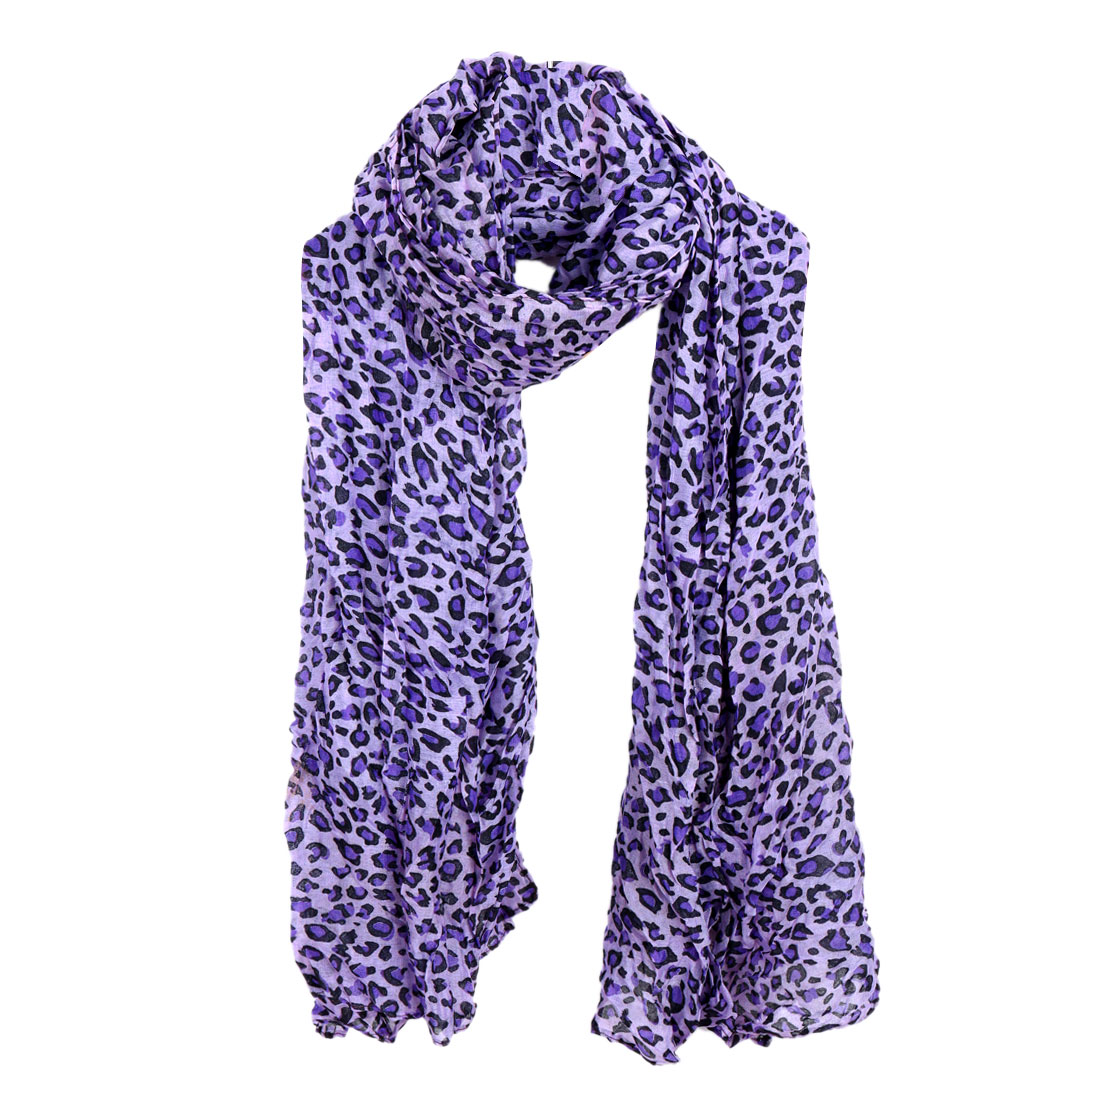 Women Pleated Winter Wearing Scarf Light Purple Black